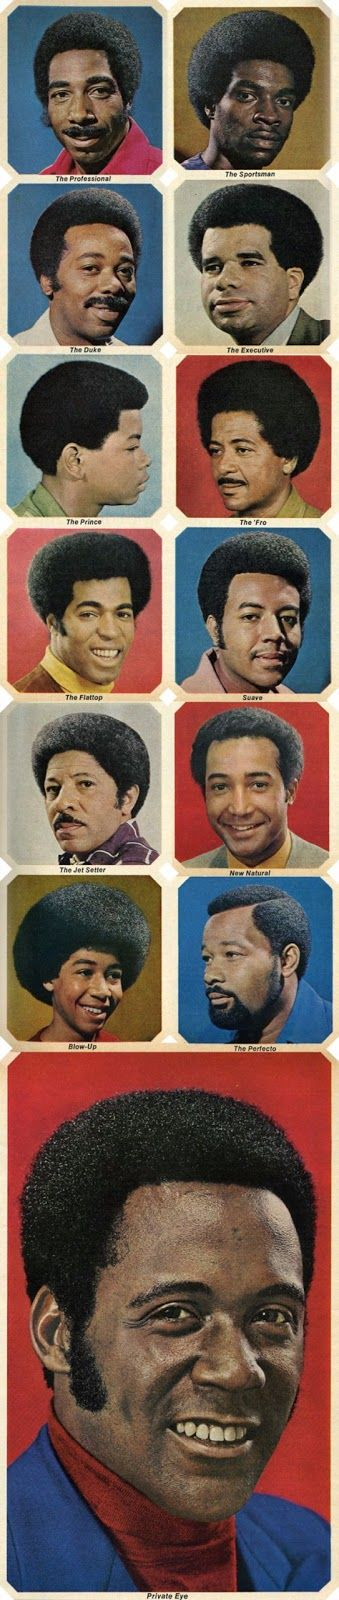 The Range of Afro Hairstyles for Black Men in the 1970s